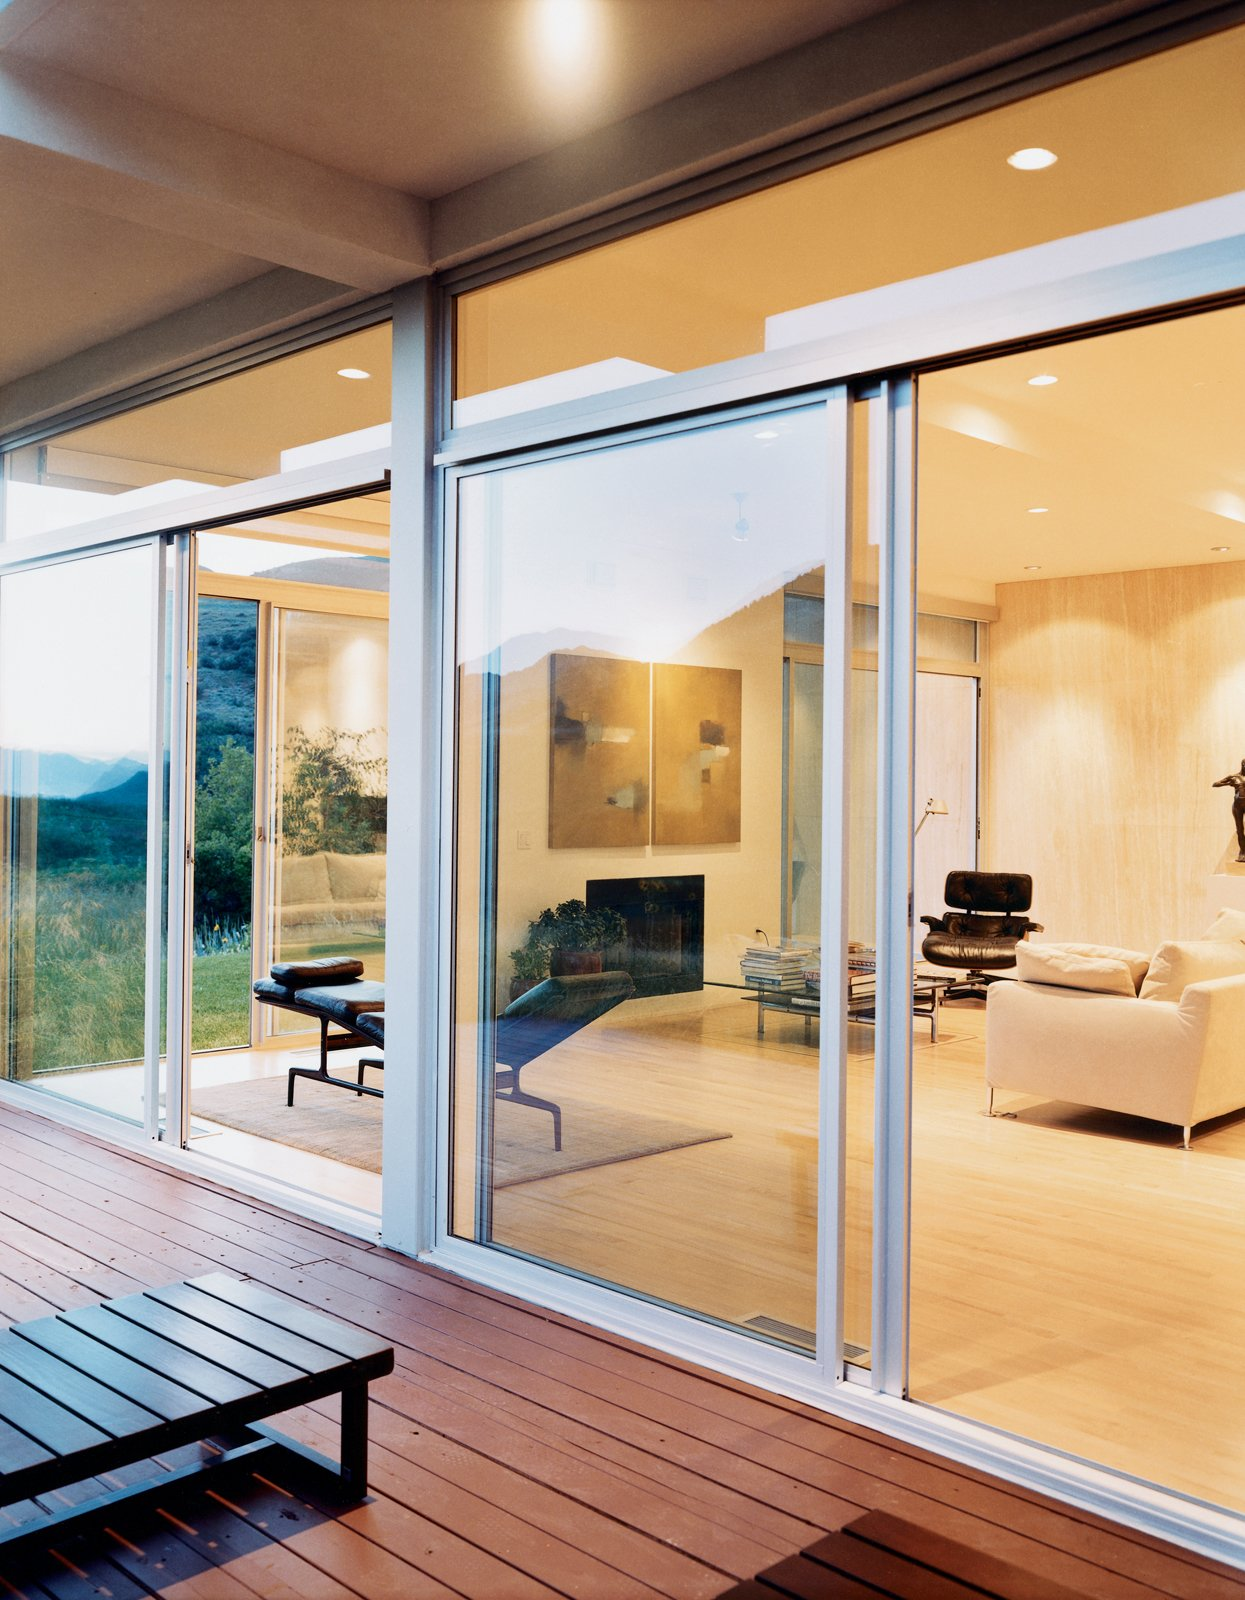 Doors, Sliding Door Type, Exterior, and Metal The living room utilizes Eames lounges and a B&B Italia sofa to create a spare but comfortable environment. Sliding glass doors provide ample ventilation.  Photo 2 of 6 in Modern Across America: Salt Lake City from Modern Awakening